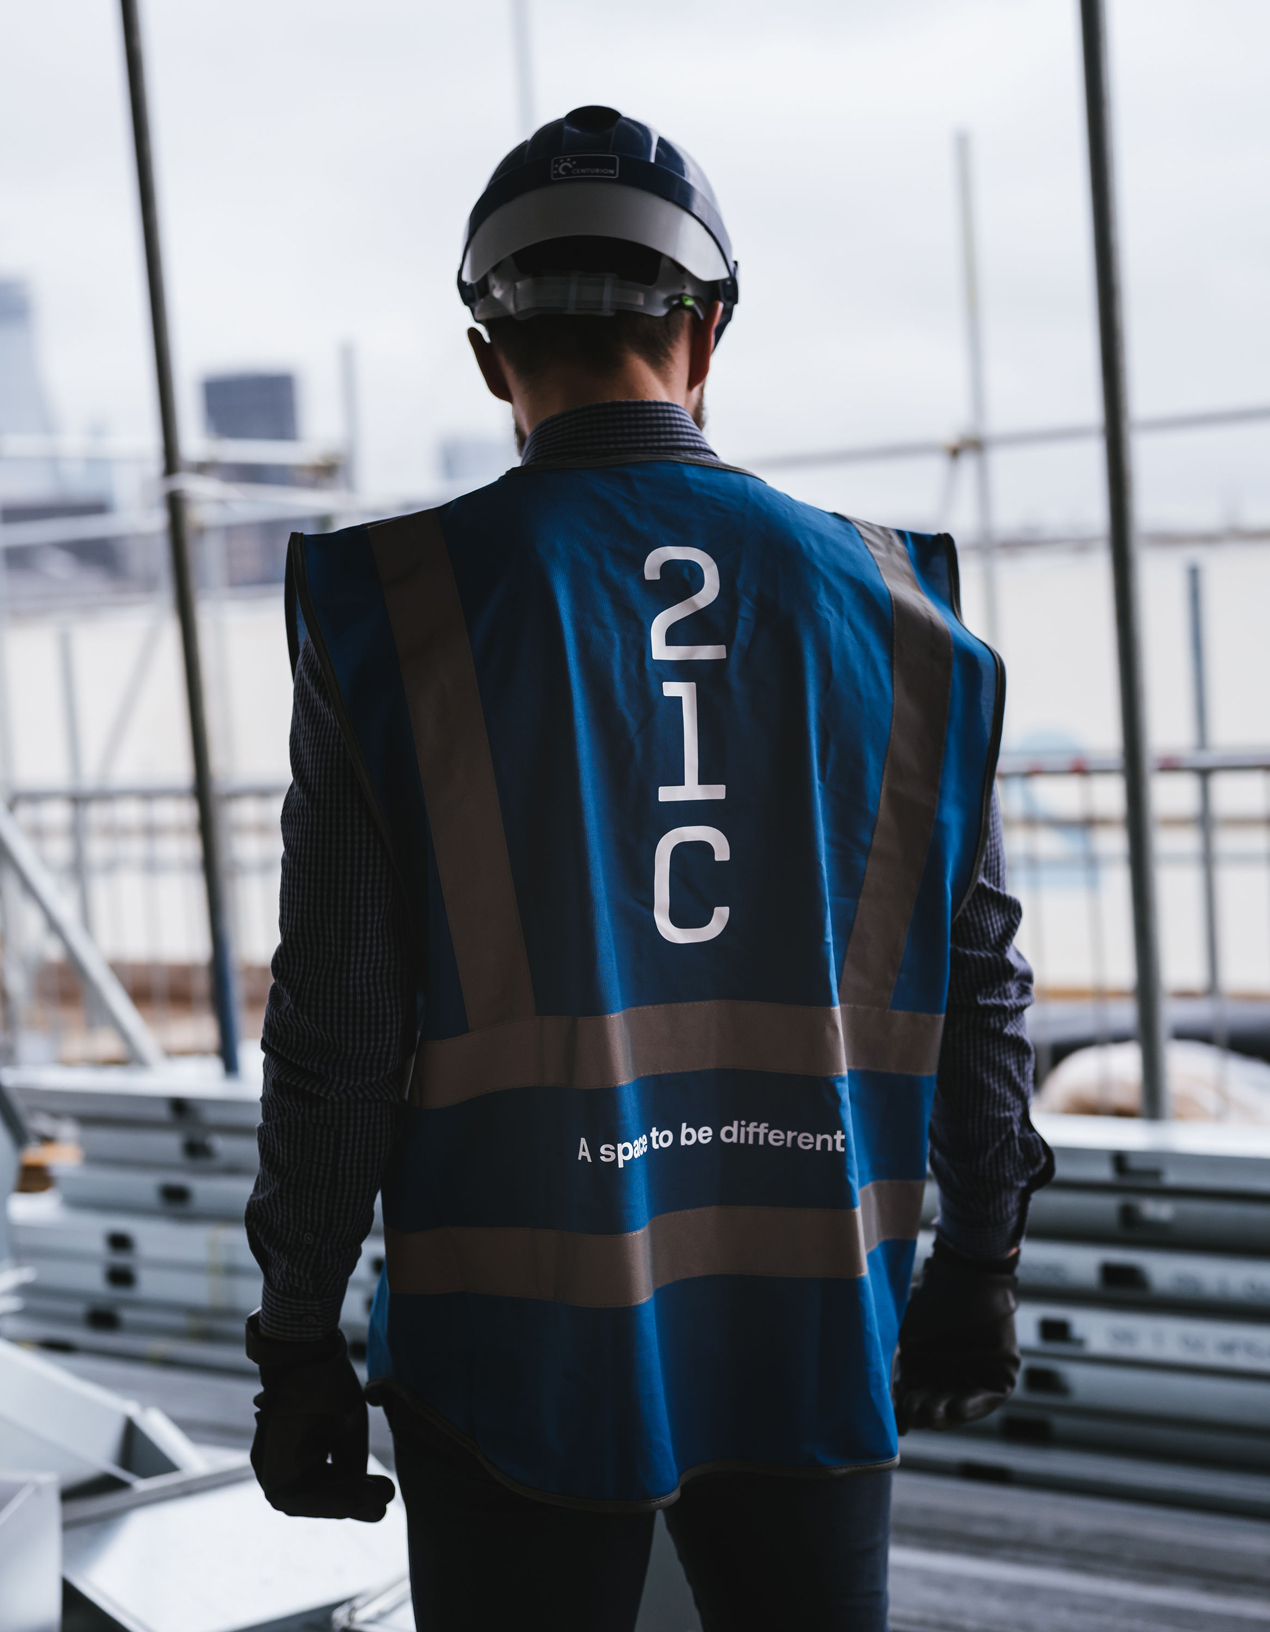 21 Construction. UnitedUs Brands that unite people, purpose, and potential